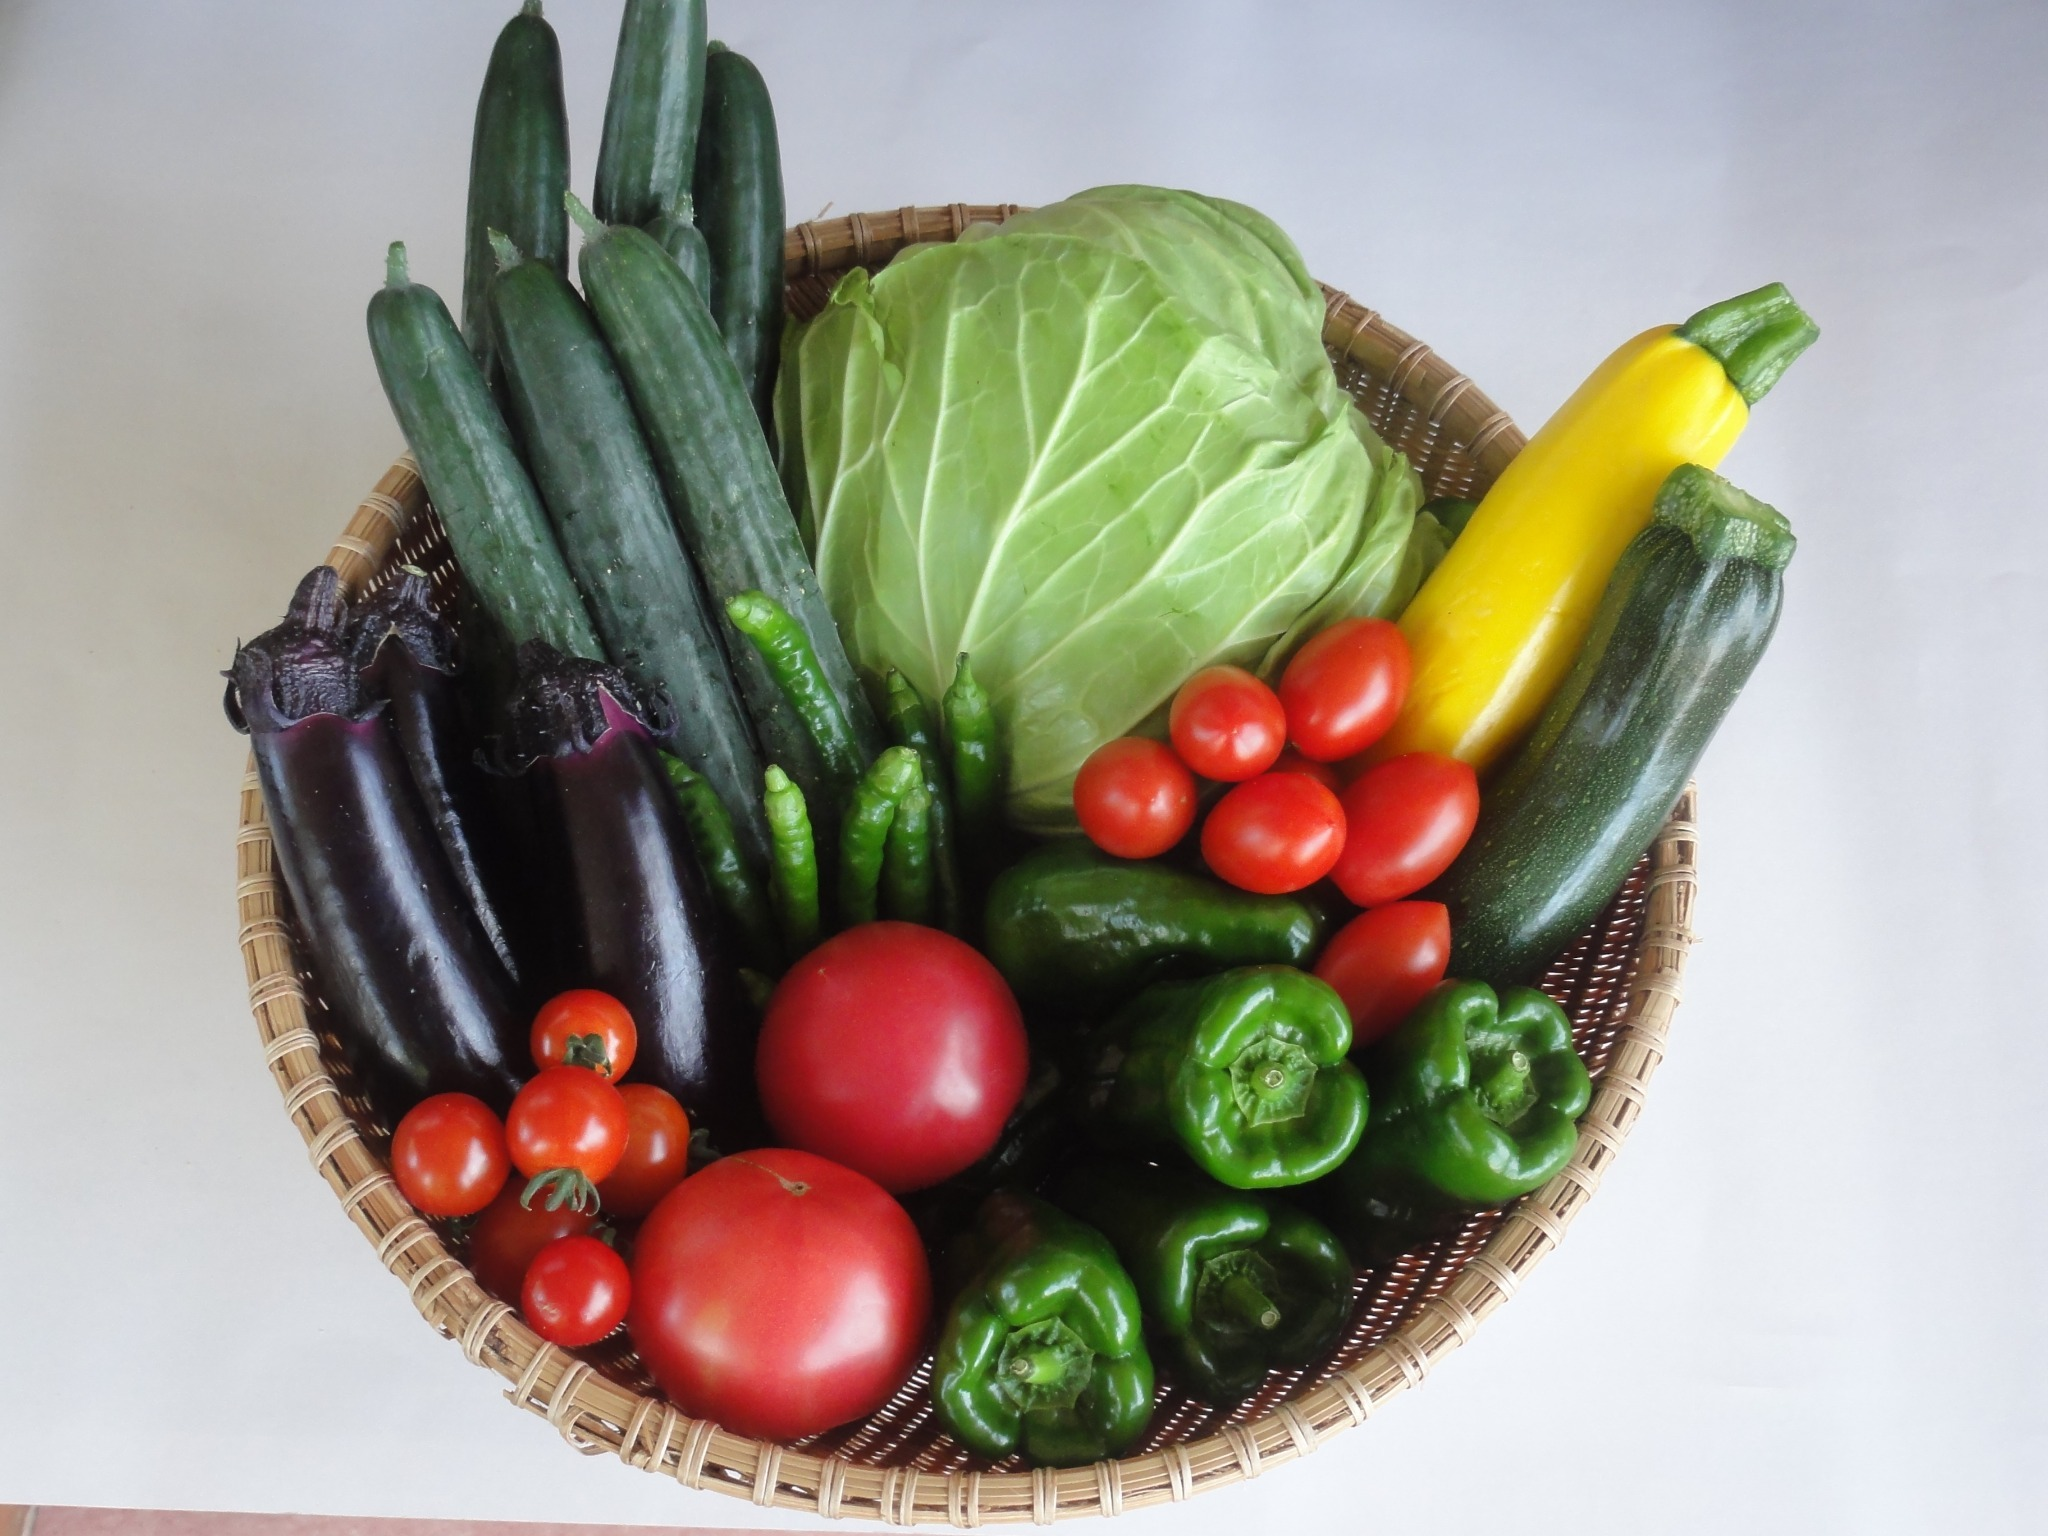 【Our organic vegetables】